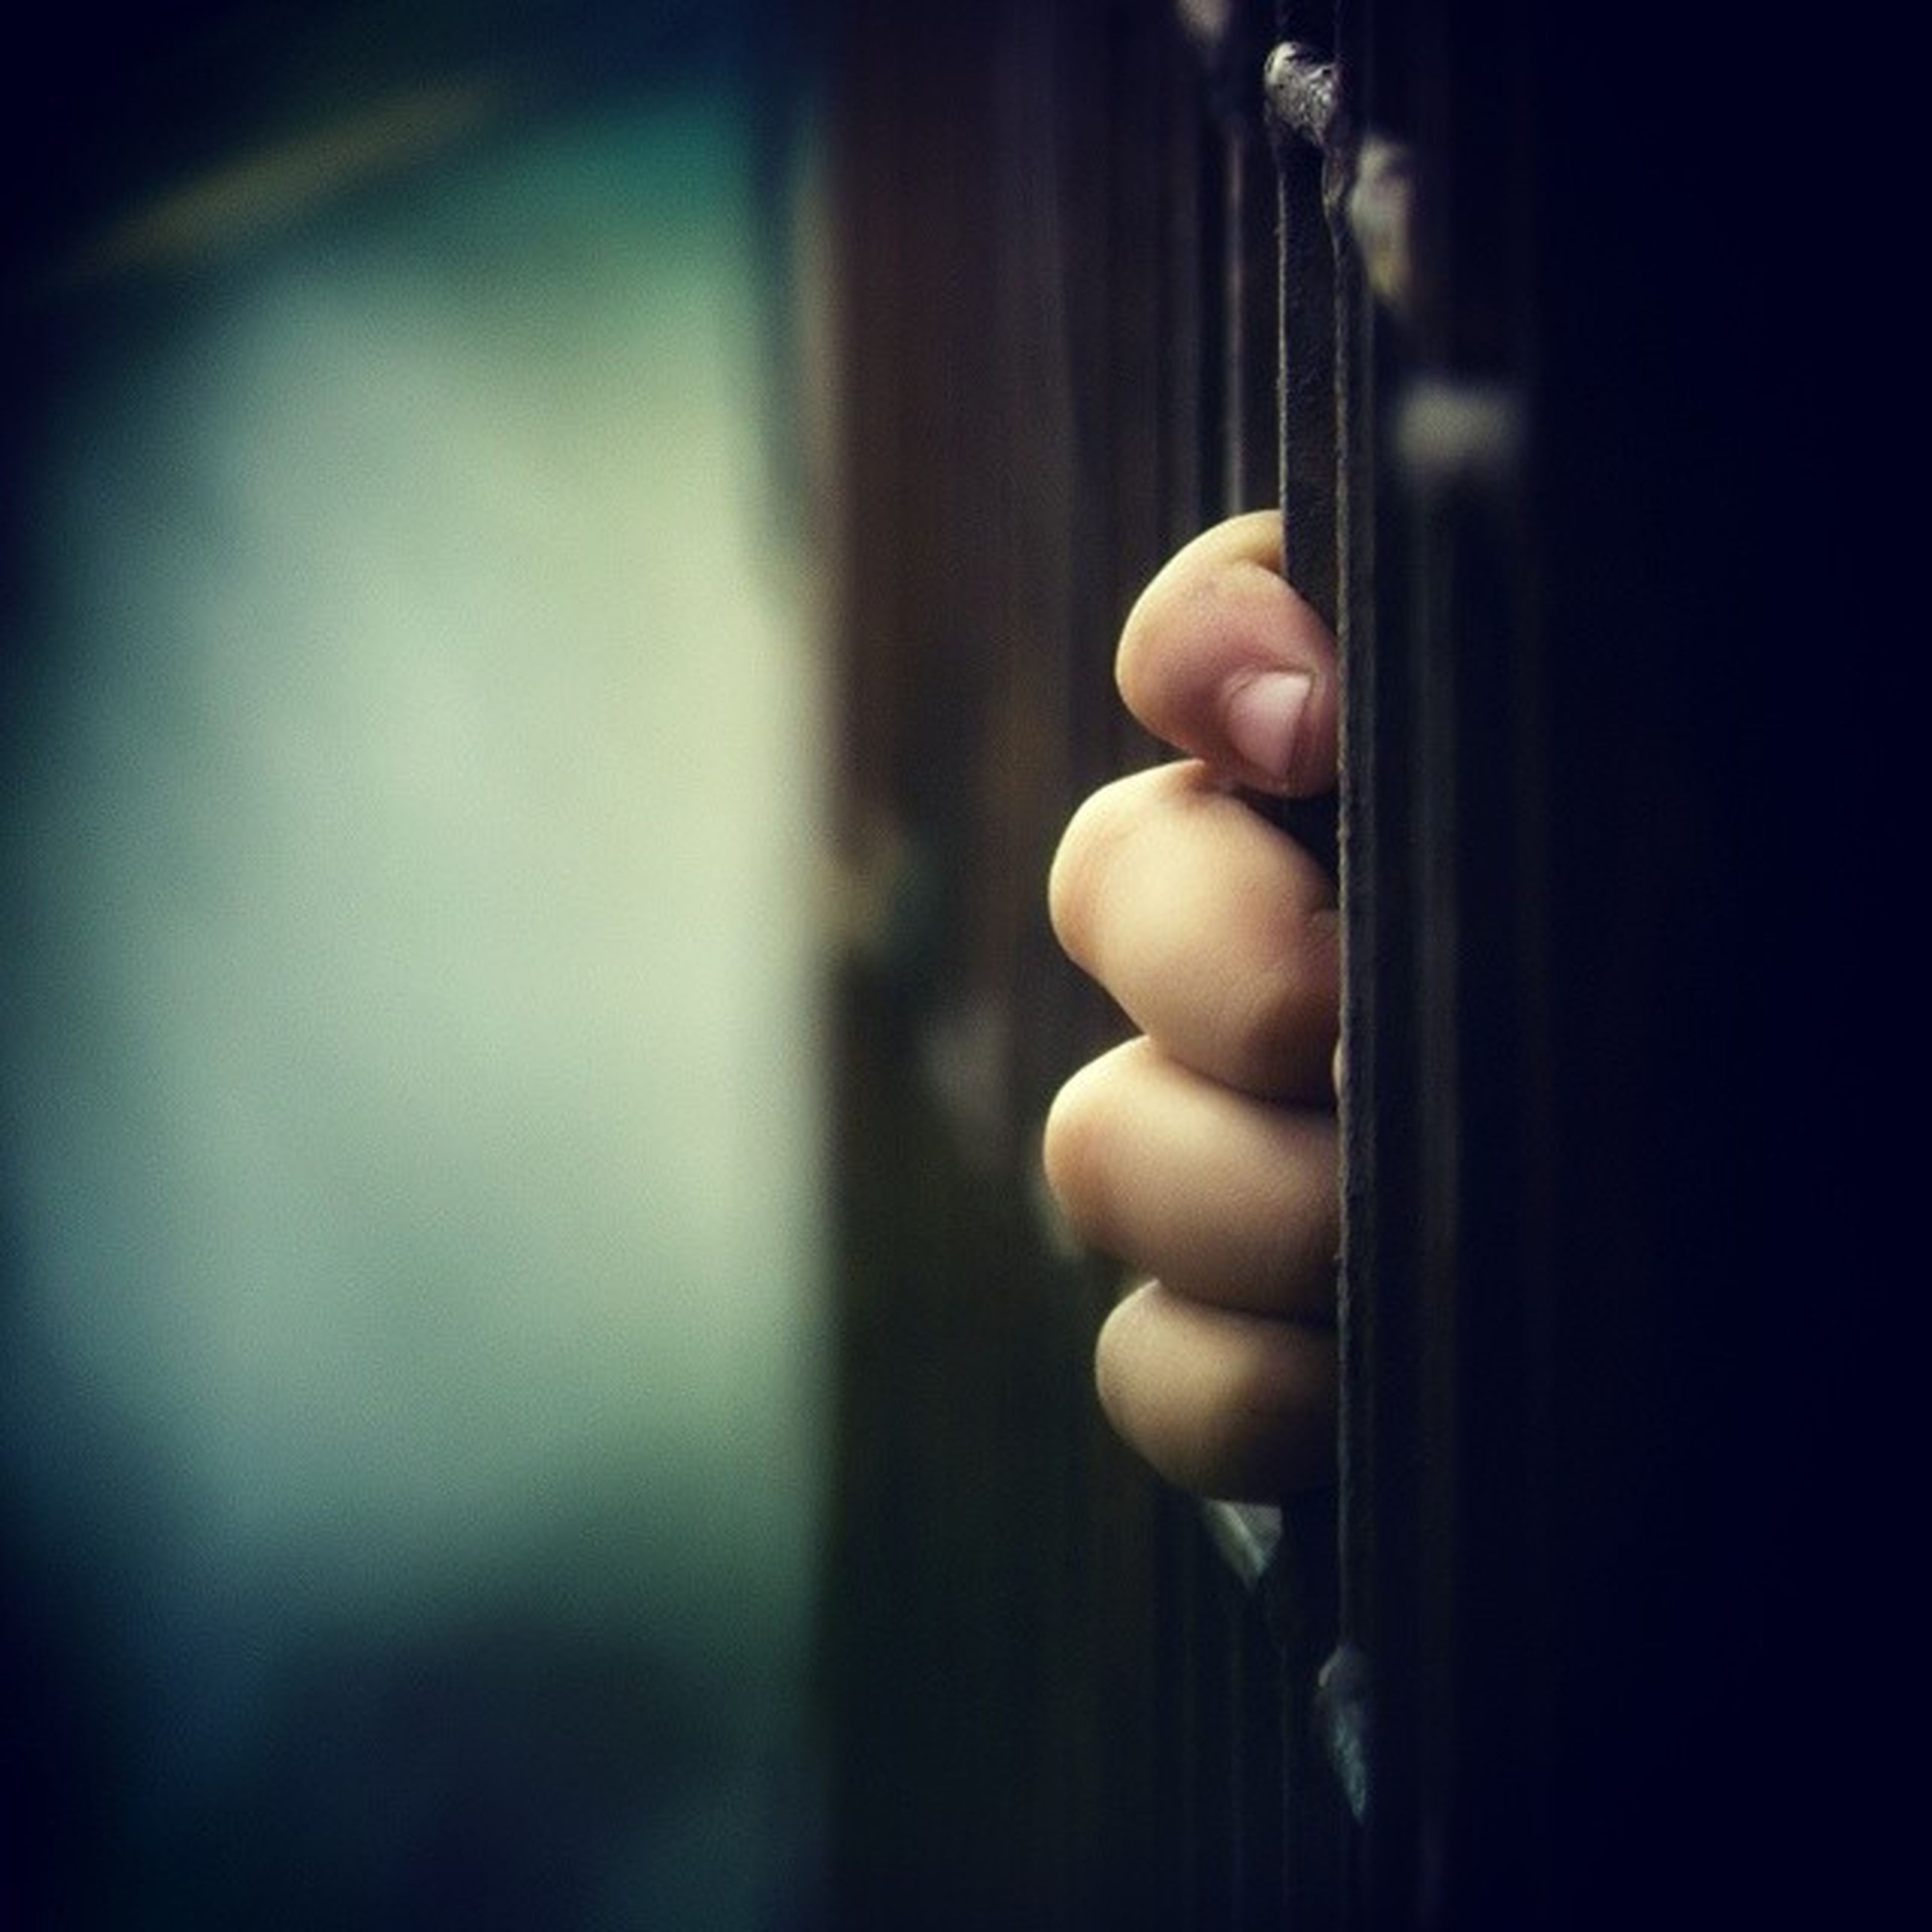 indoors, close-up, person, part of, childhood, focus on foreground, selective focus, holding, cropped, home interior, window, human finger, metal, auto post production filter, lifestyles, wood - material, door